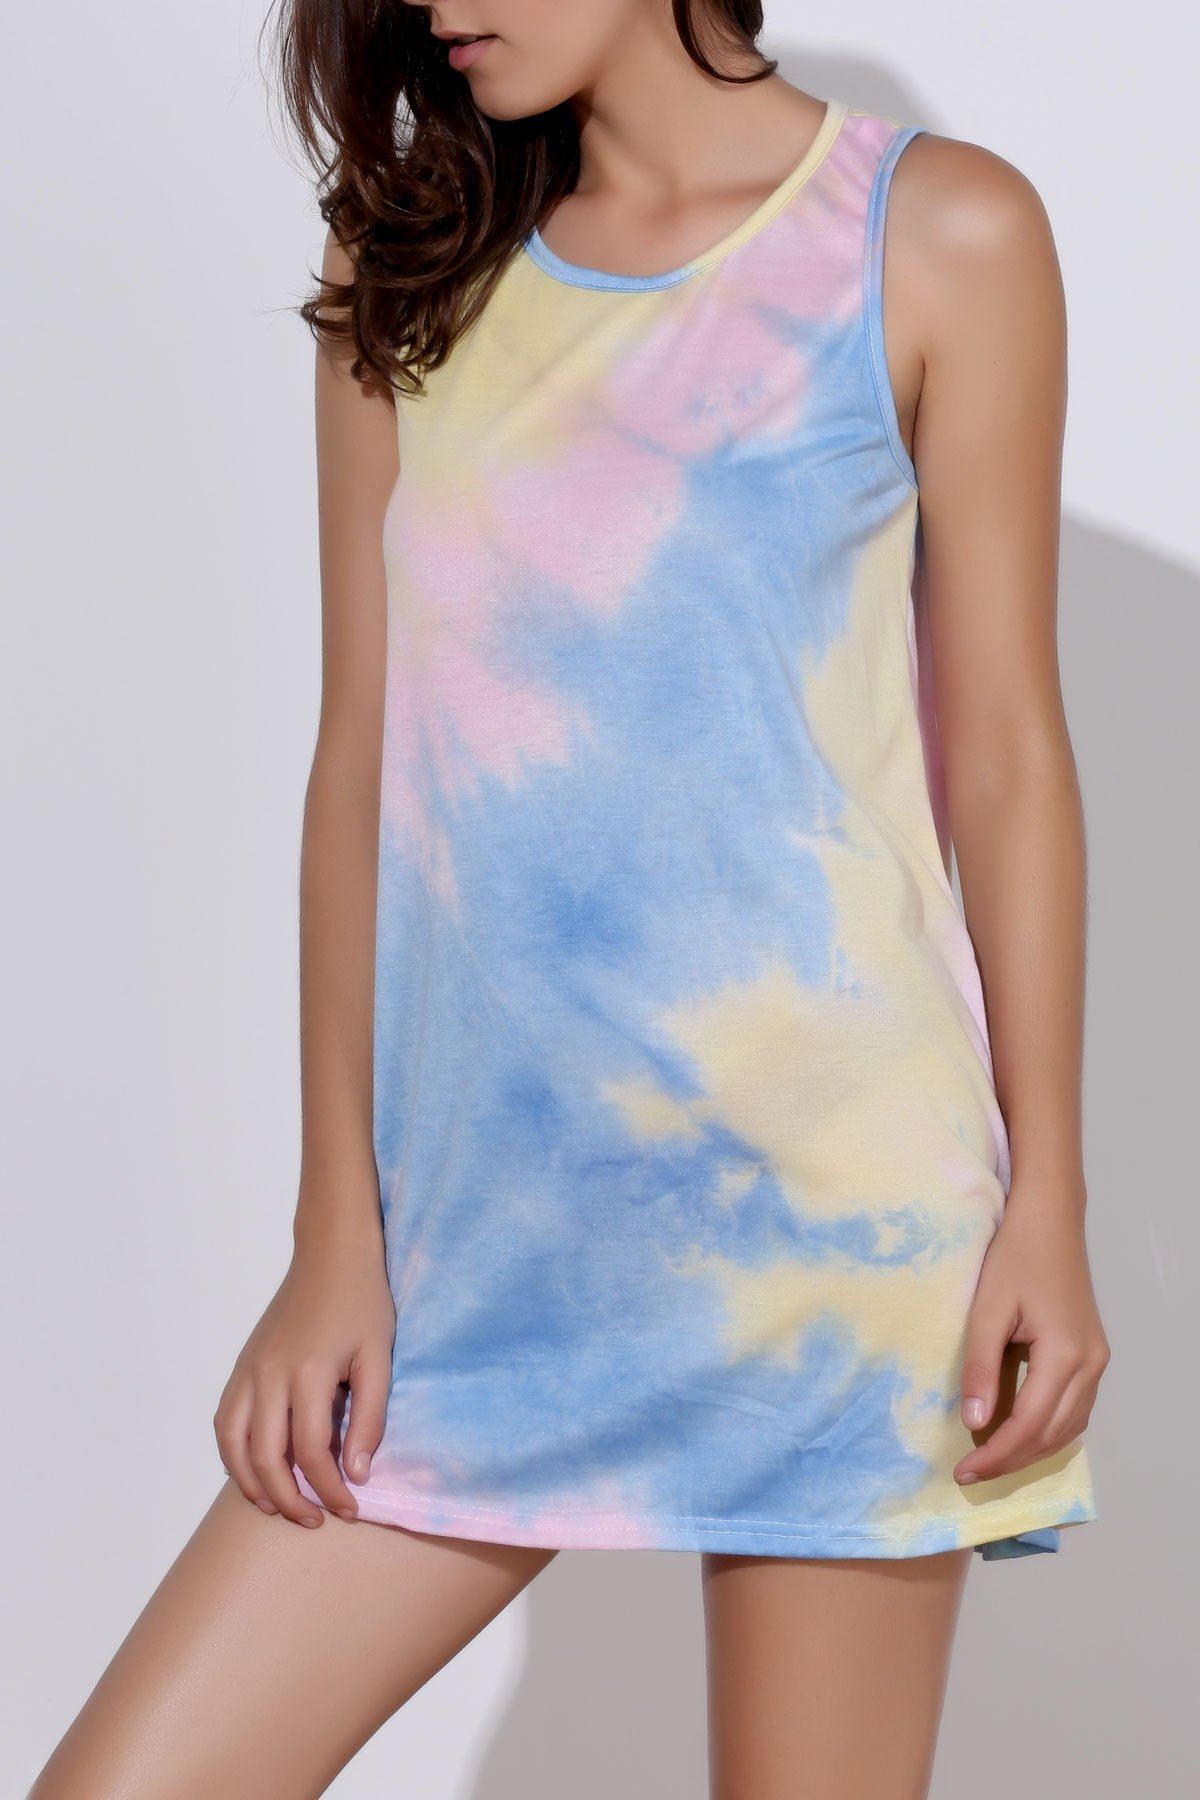 Sexy Sleeveless Round Neck Tie Dye Women's Dress - COLORMIX S